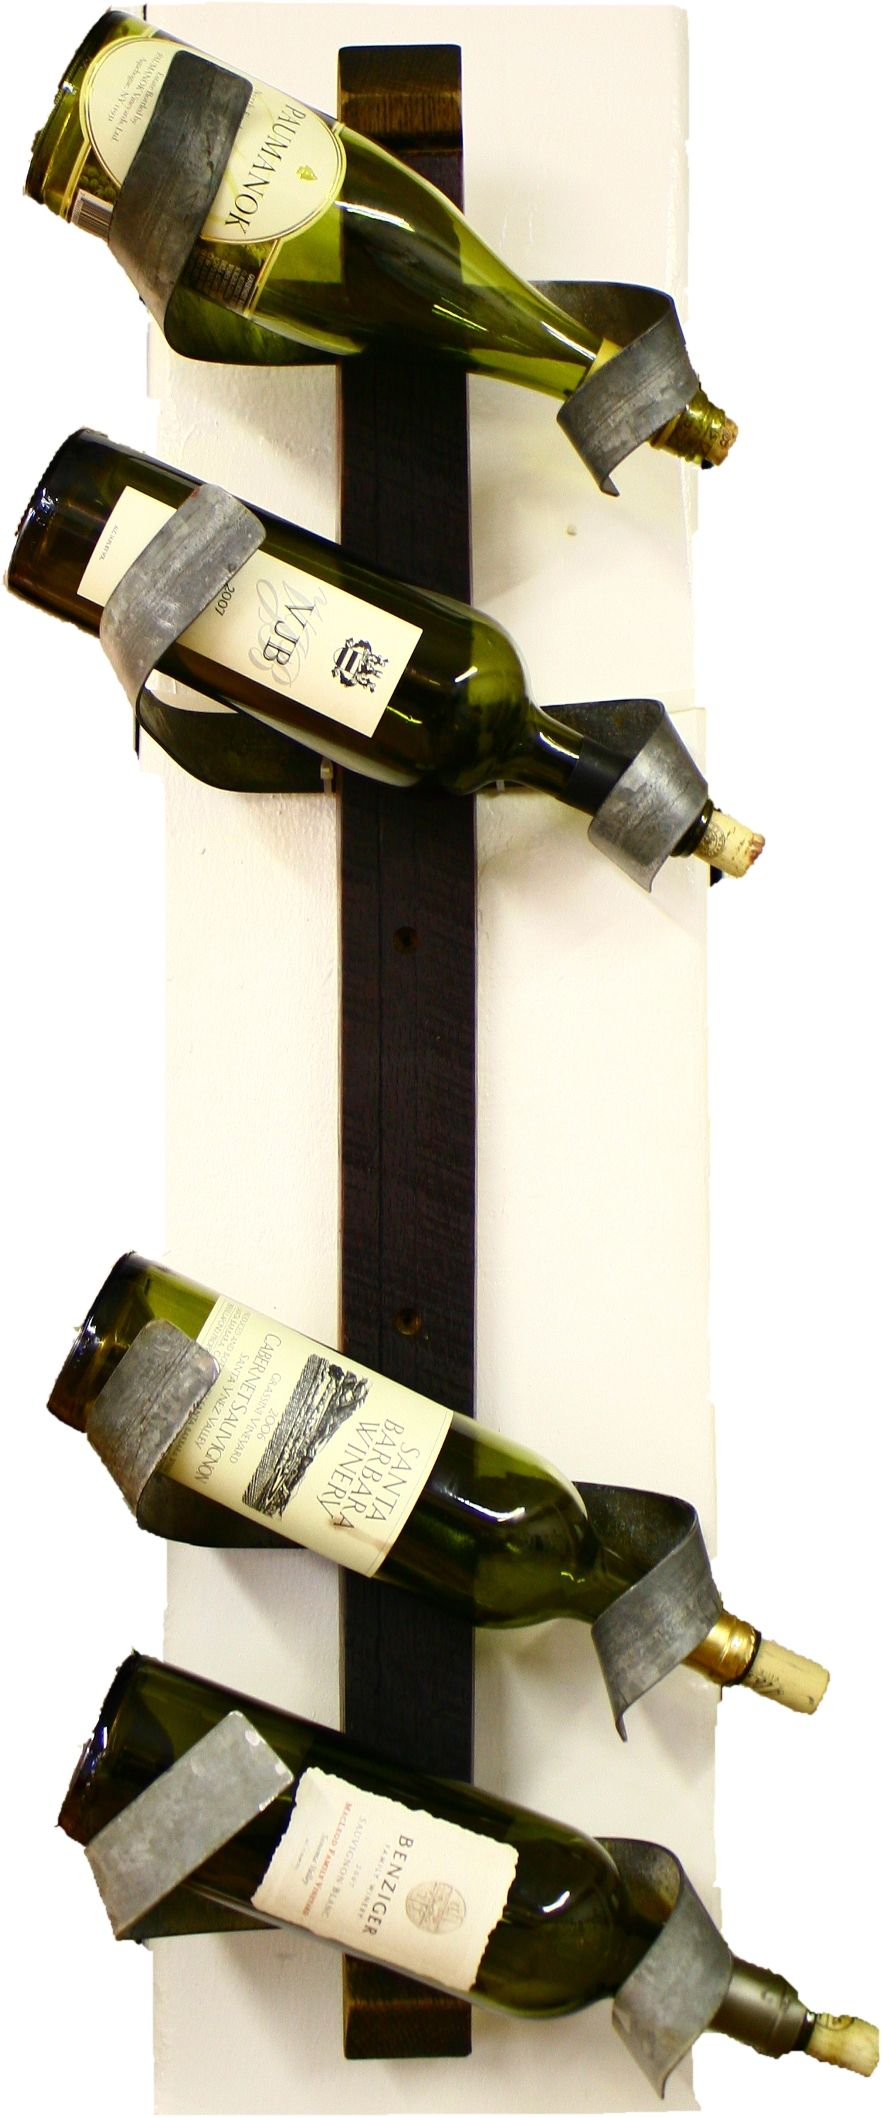 locally made wine barrel accessories - including wine bottle holders ...